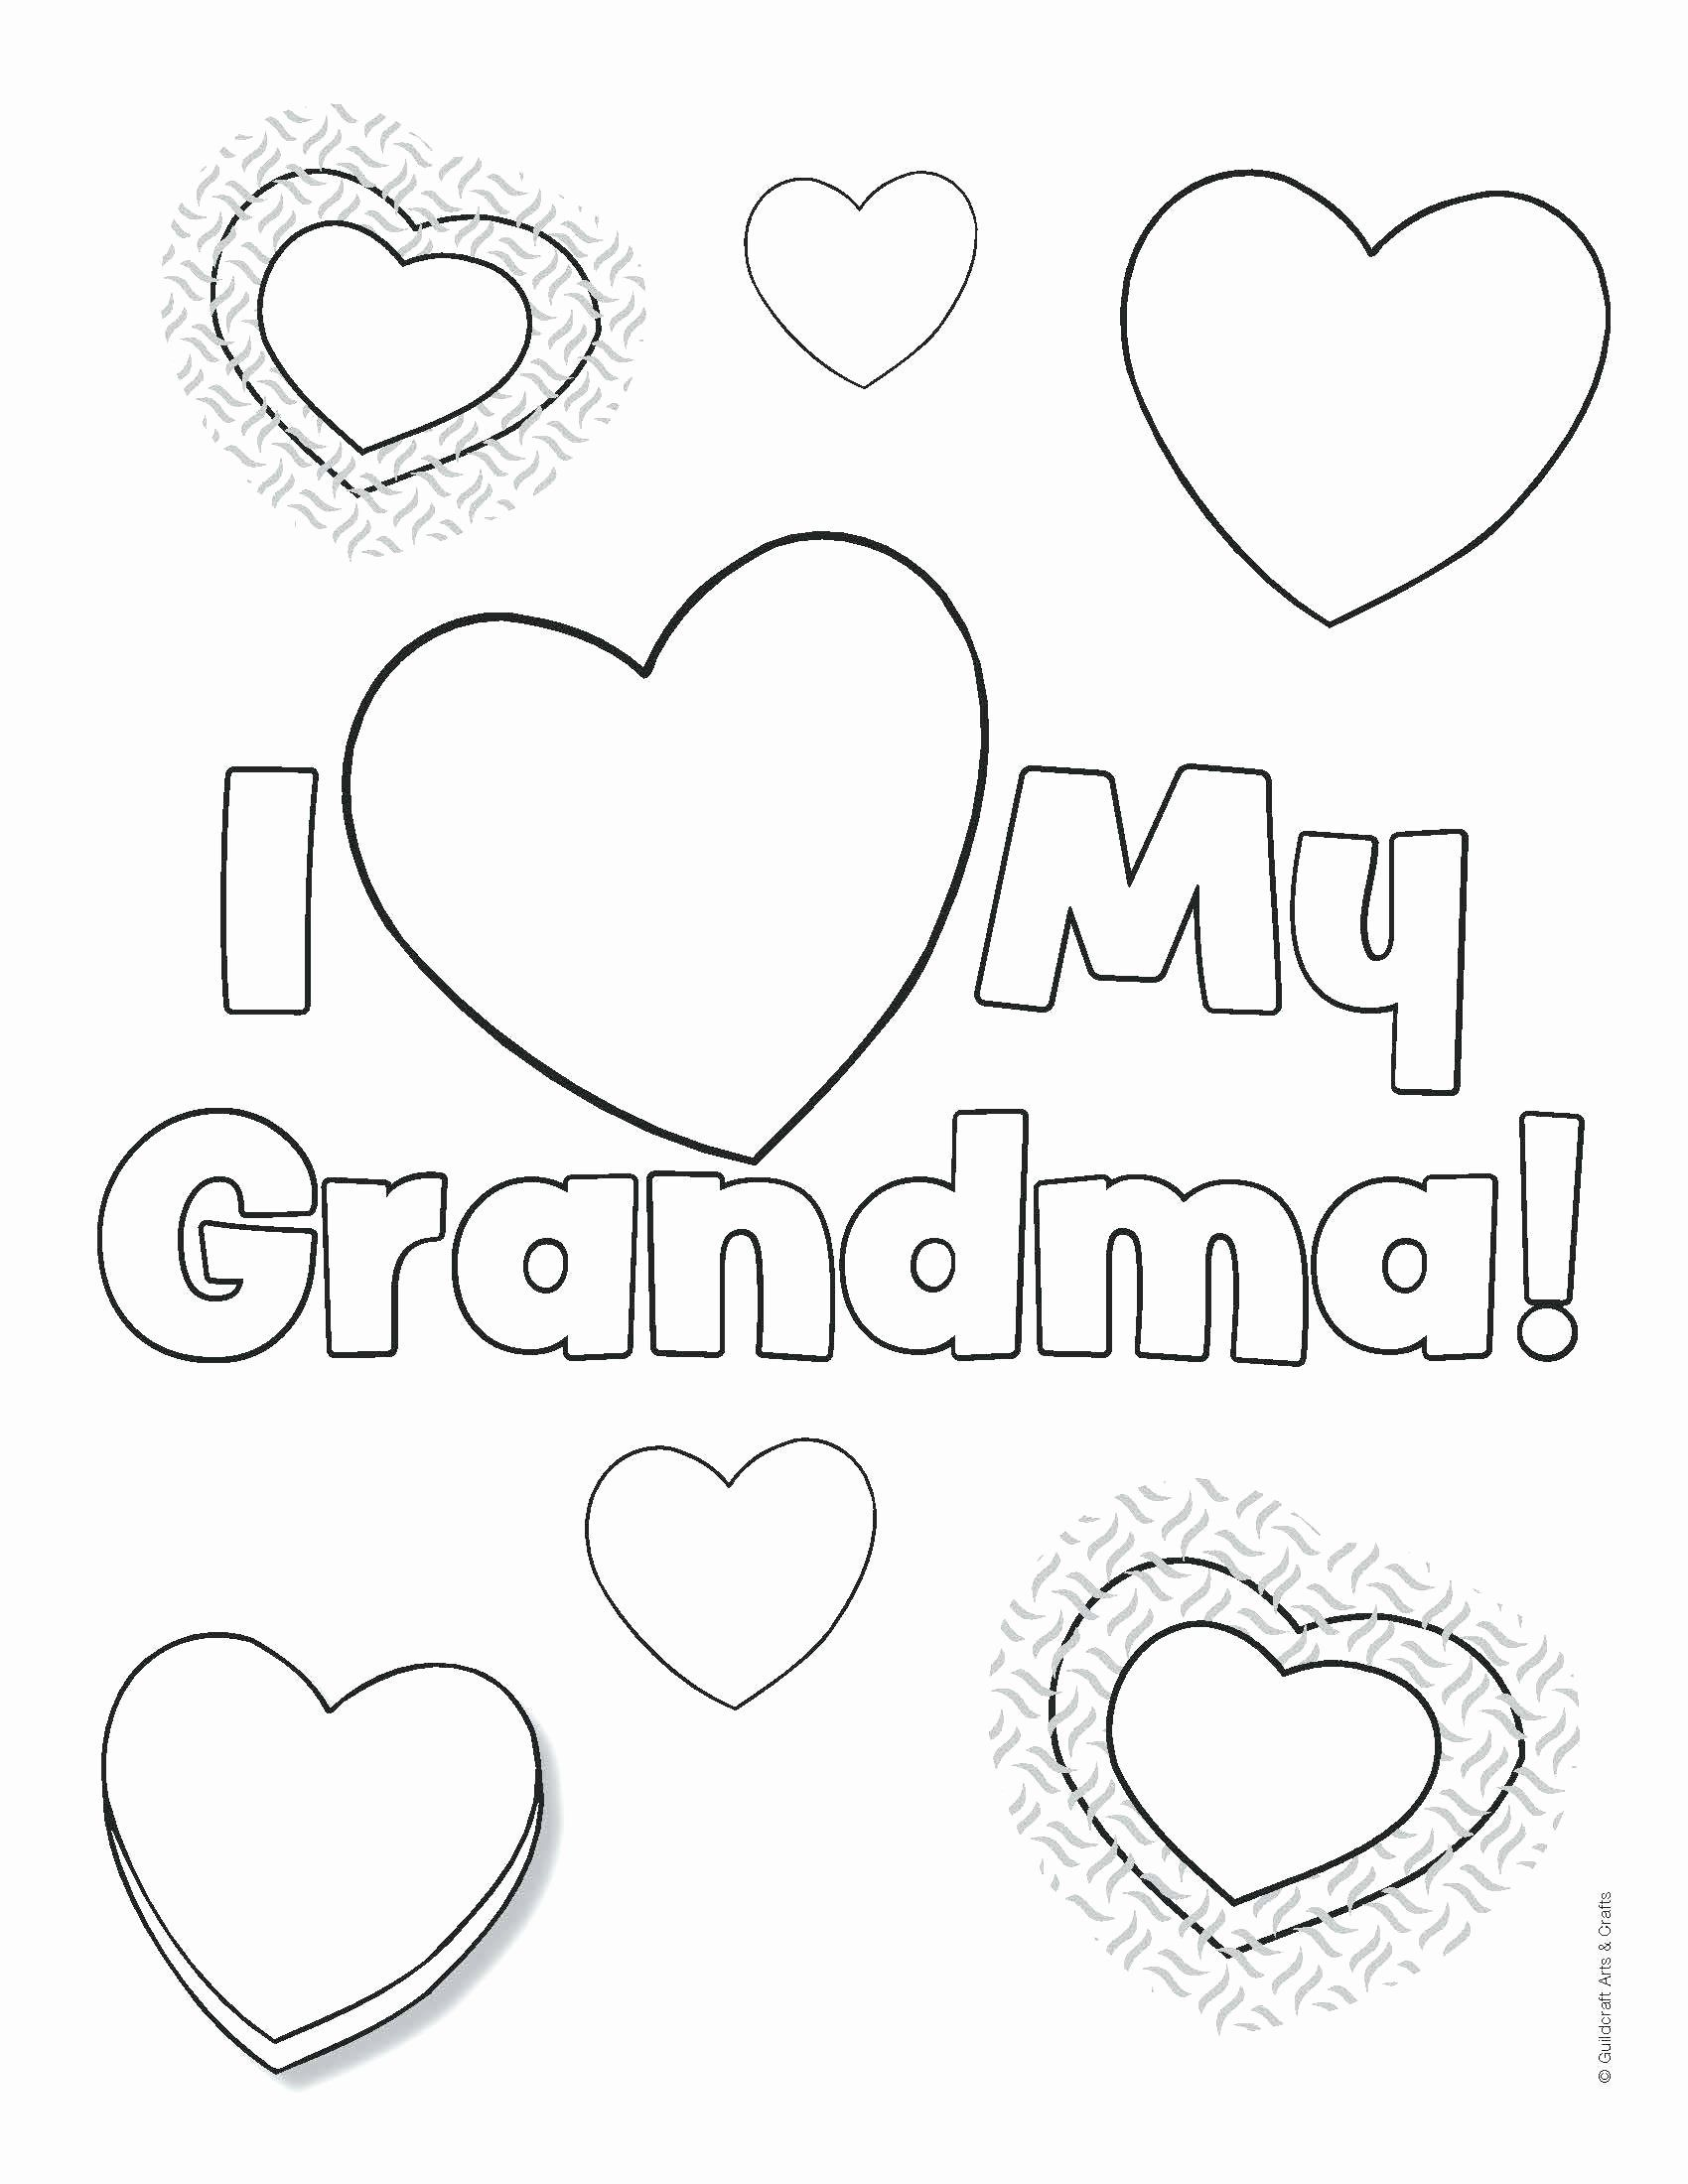 Happy Grandparents Day Owl Coloring Sheet Grandparentsday Coloringsheets Owls Grandparents Day Crafts Happy Grandparents Day Grandparents Day Cards